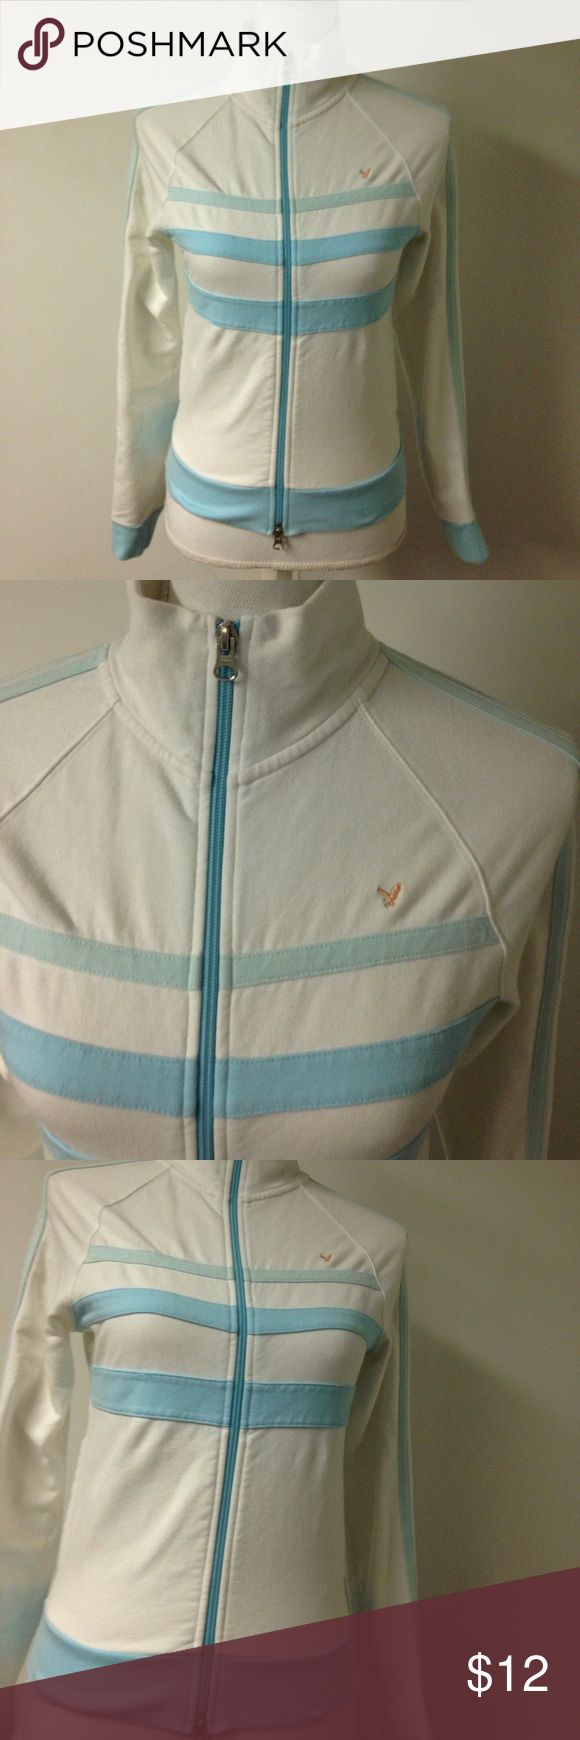 American Eagle Jacket pastel colors Double front zipper Made with 96% cotton and 4% spandex Super cool Embroidered eagle logo in front. Blue strips, is so beautiful! American Eagle Outfitters Jackets & Coats